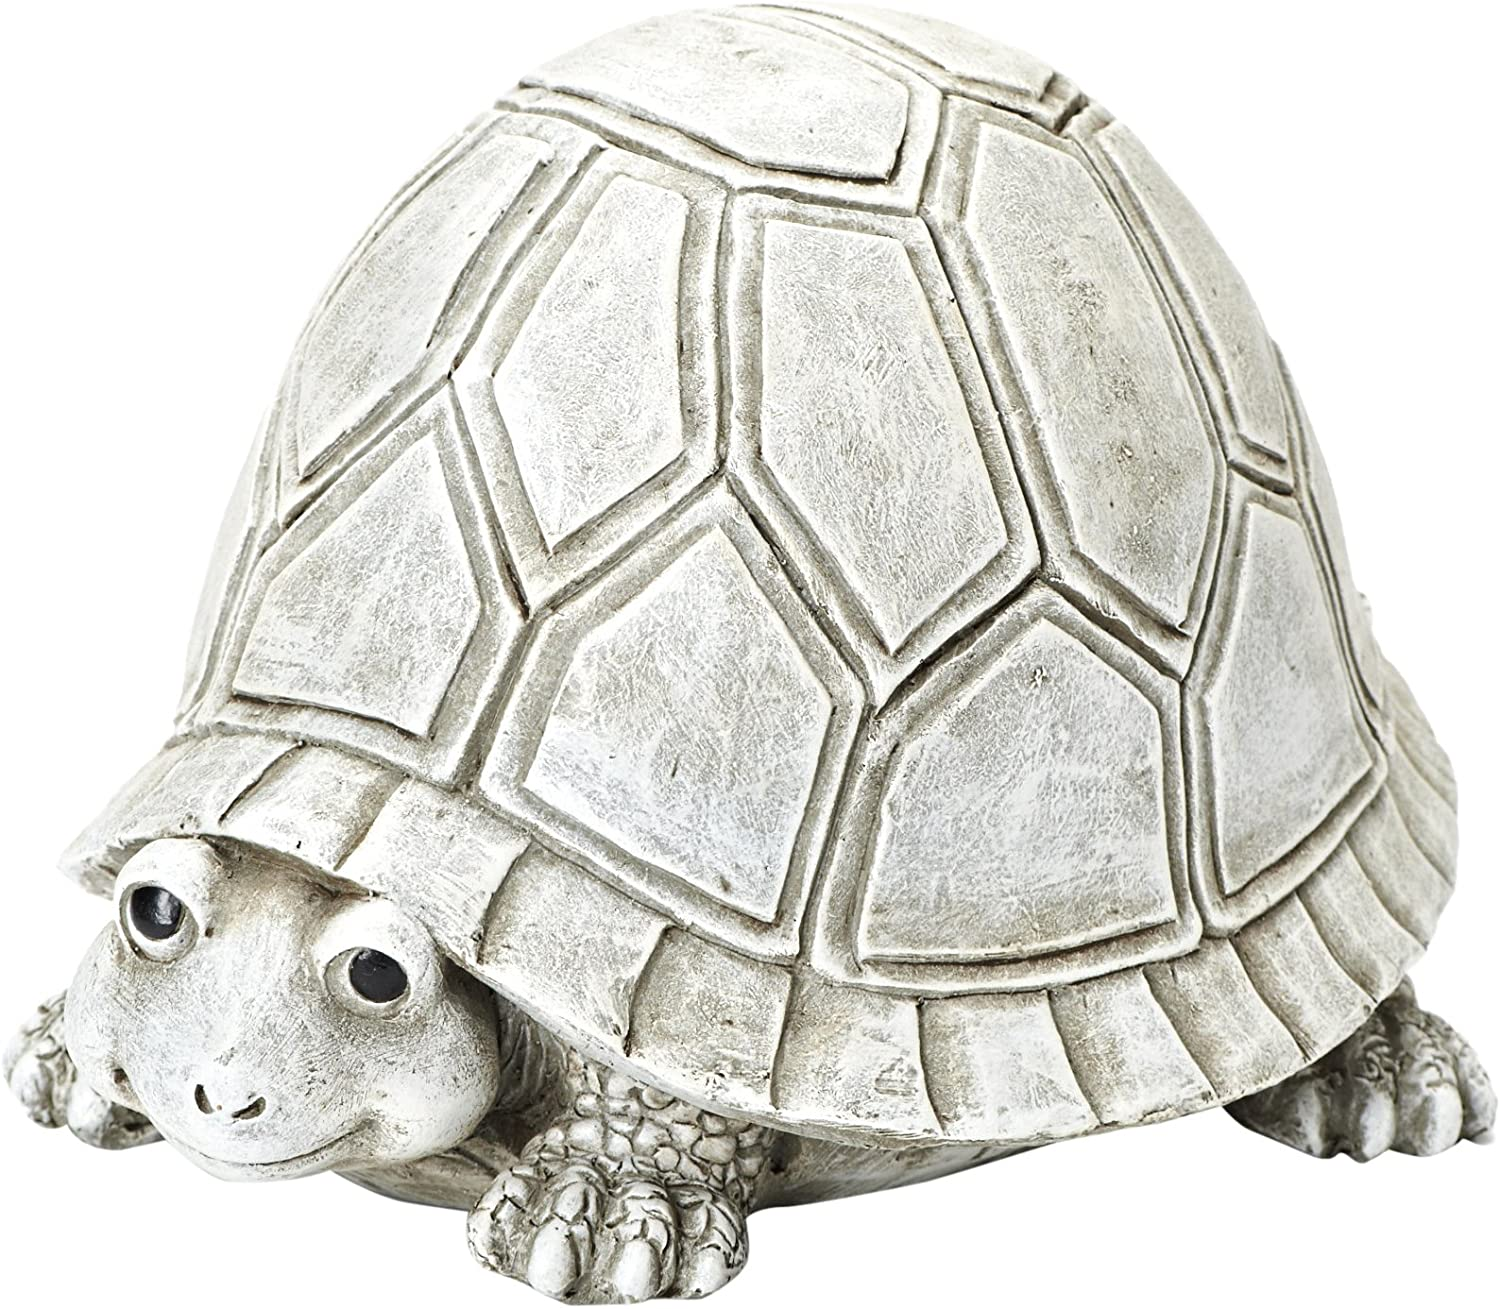 Roman Exclusive Pudgy Pal Turtle Garden Statue, 7-Inch, Made of Dolomite